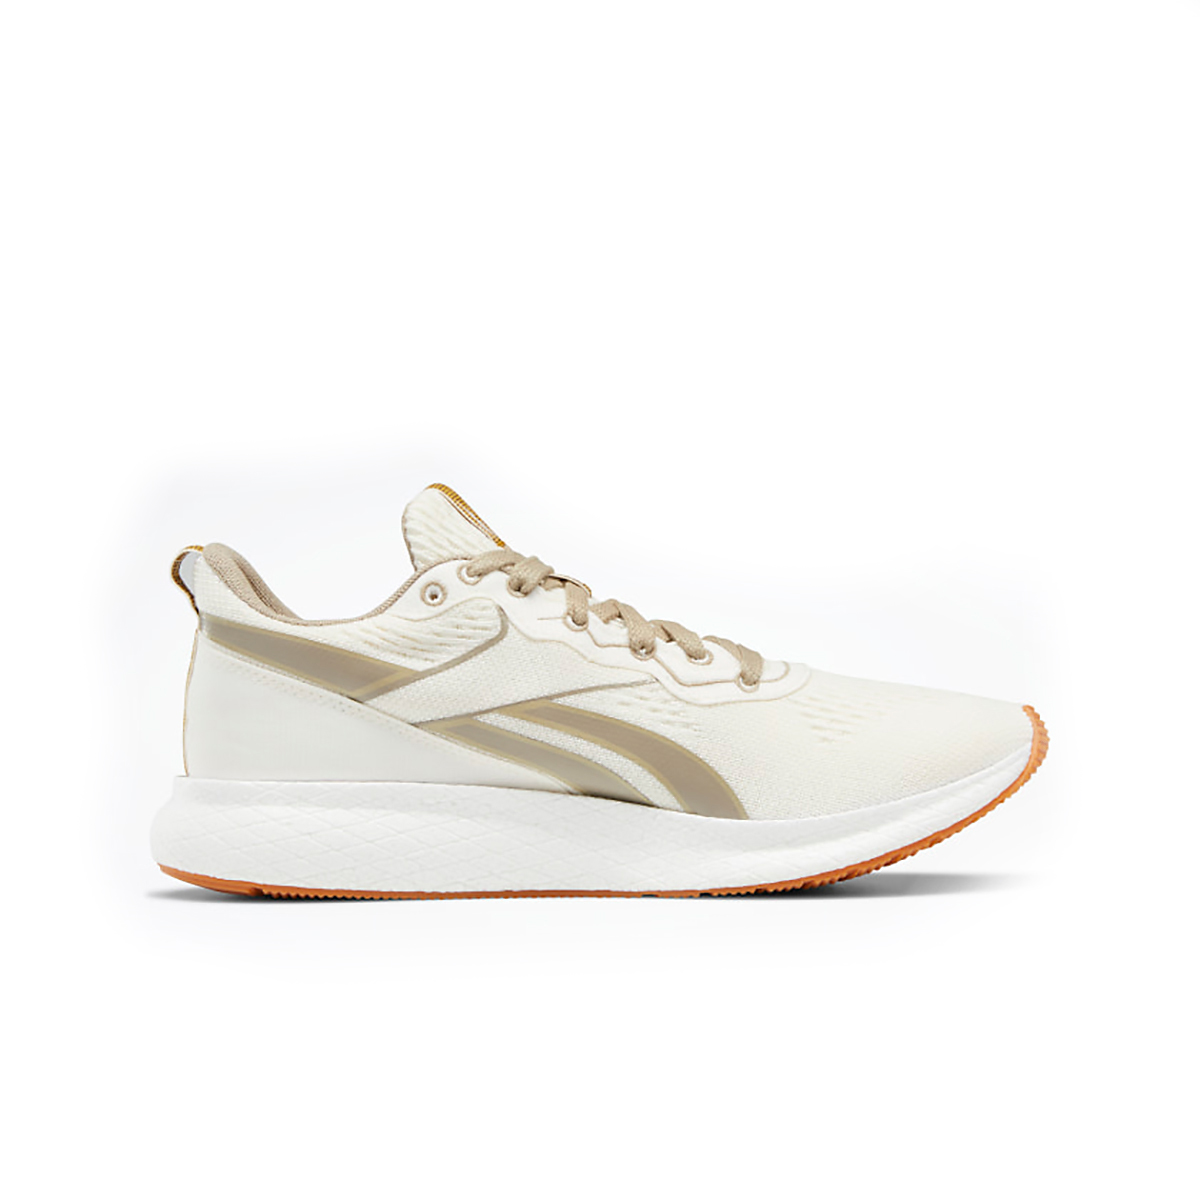 Men's Reebok Forever Floatride Grow Running Shoe - Color: Classic White/Straw/Super Neutral - Size: 8 - Width: Regular, Classic White/Straw/Super Neutral, large, image 2